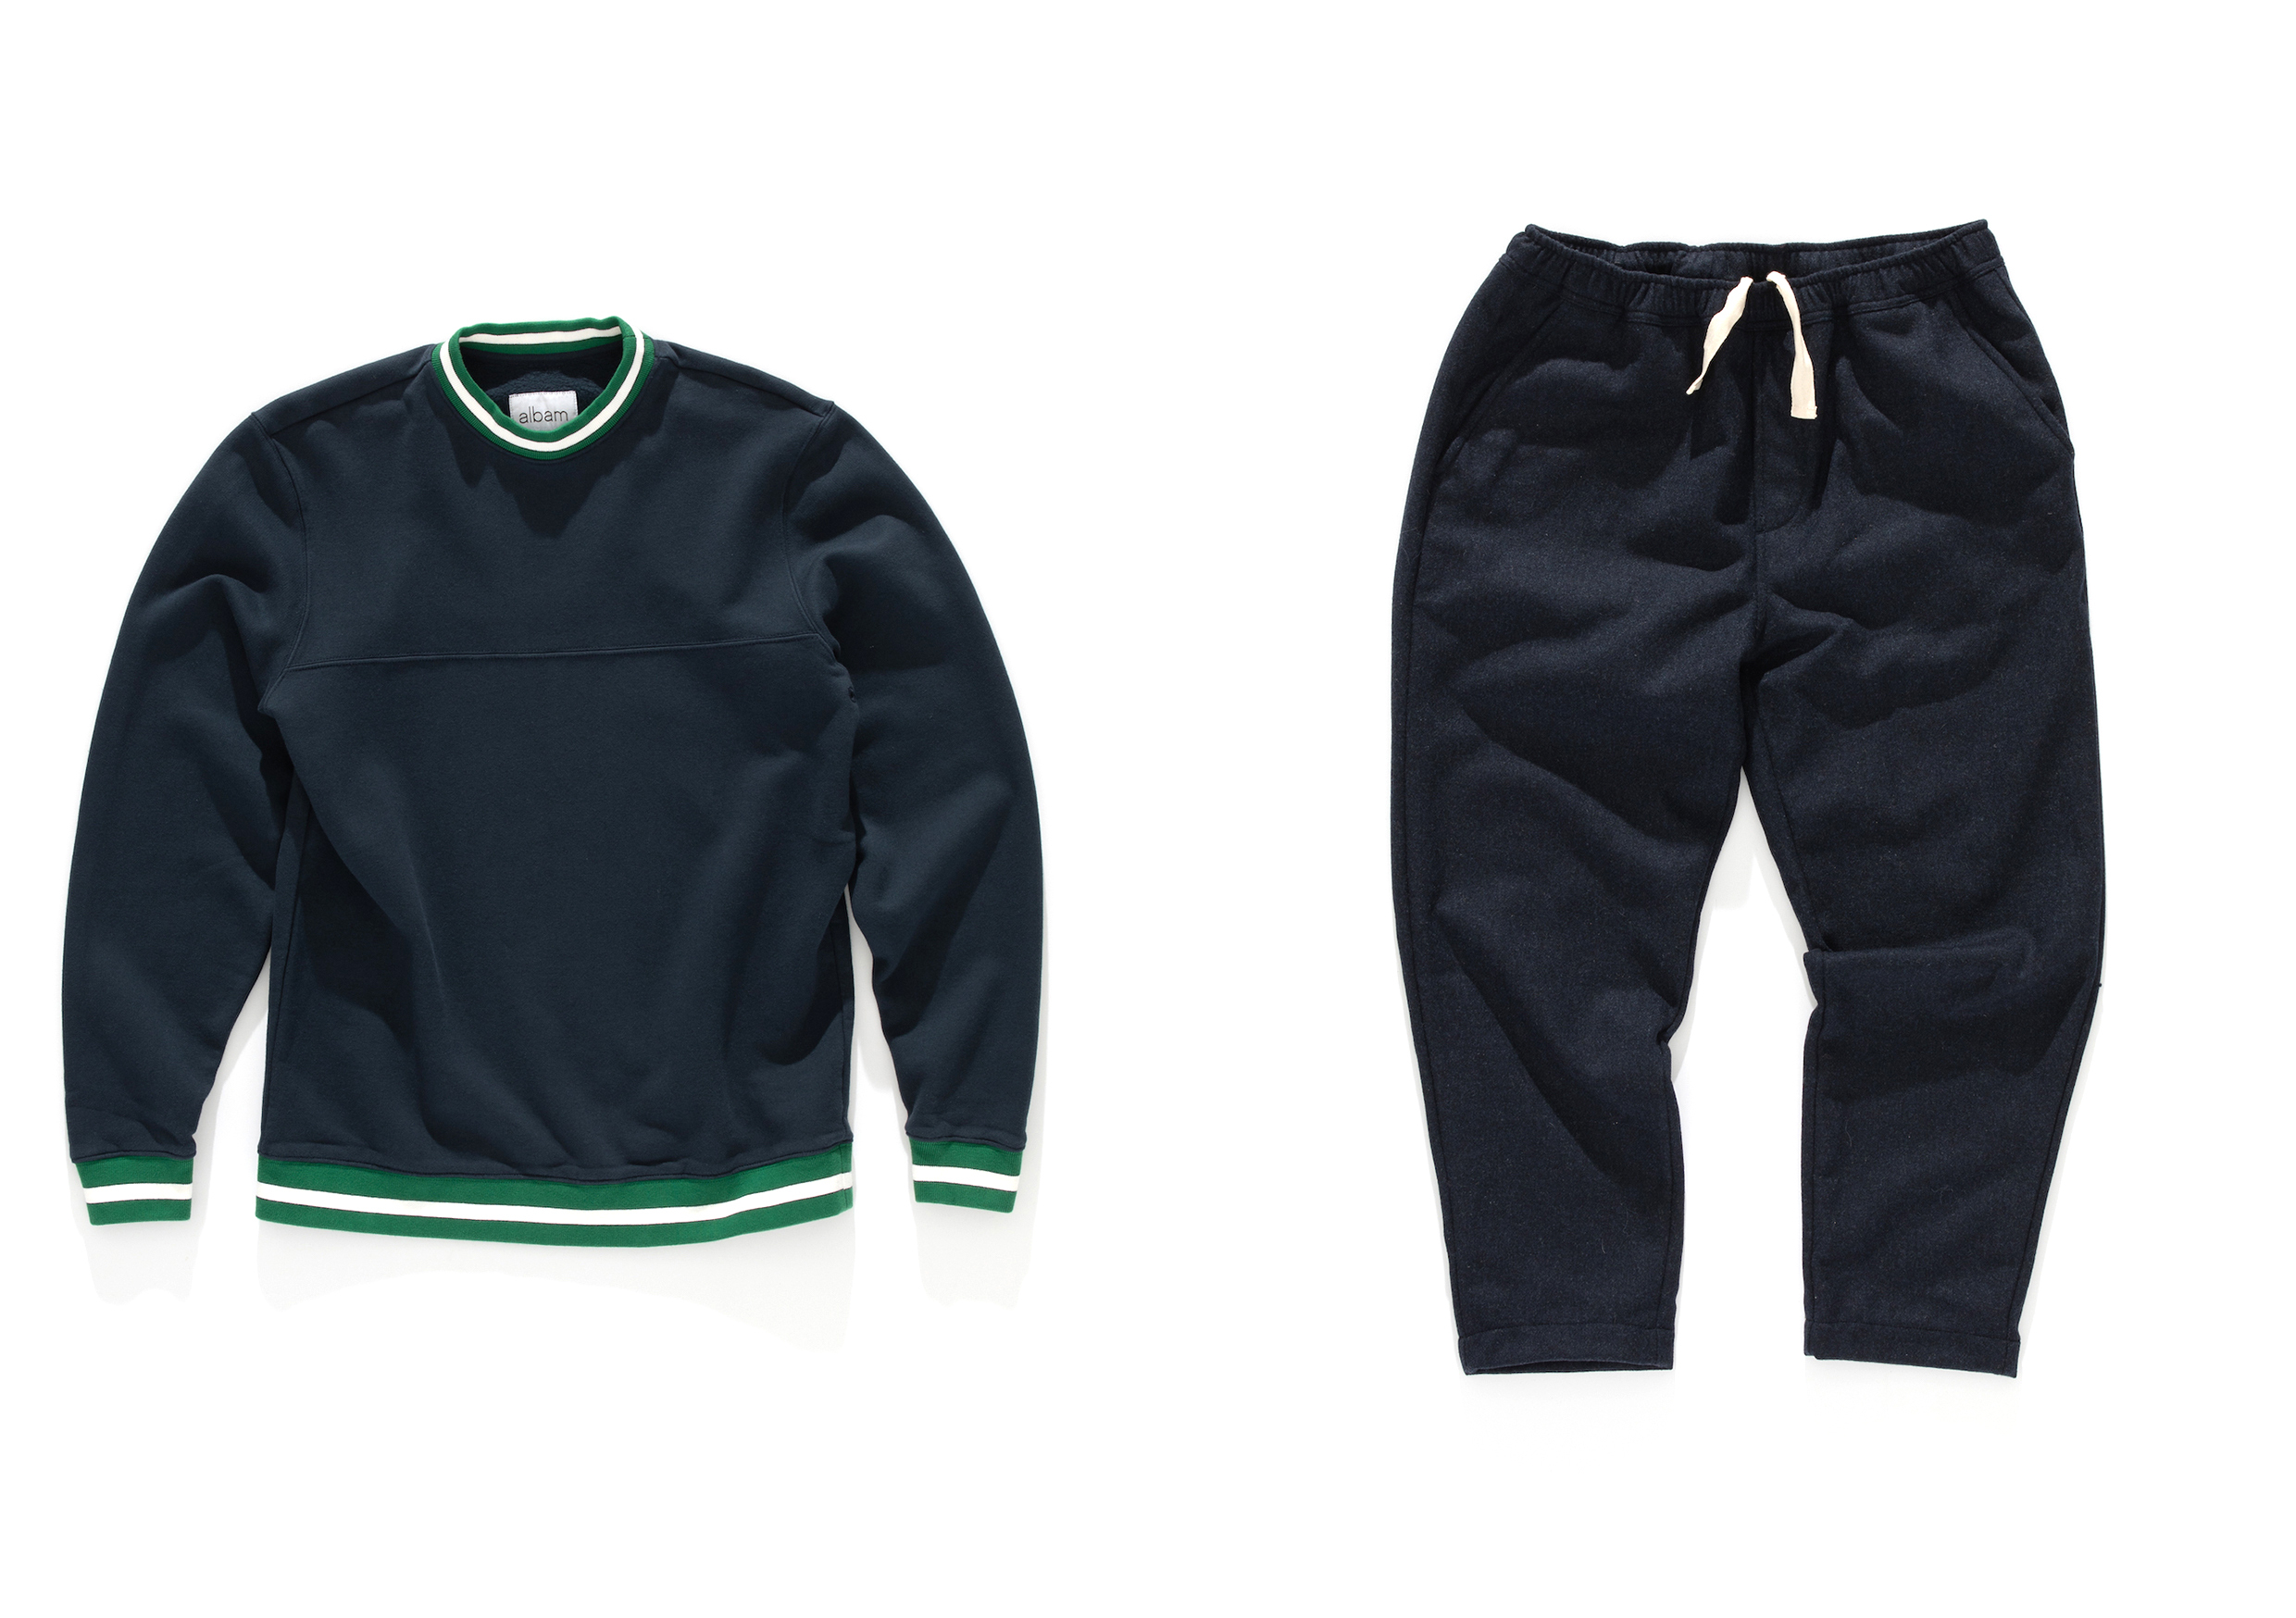 Albam AW20 Collection At HIP sweatshirt pants